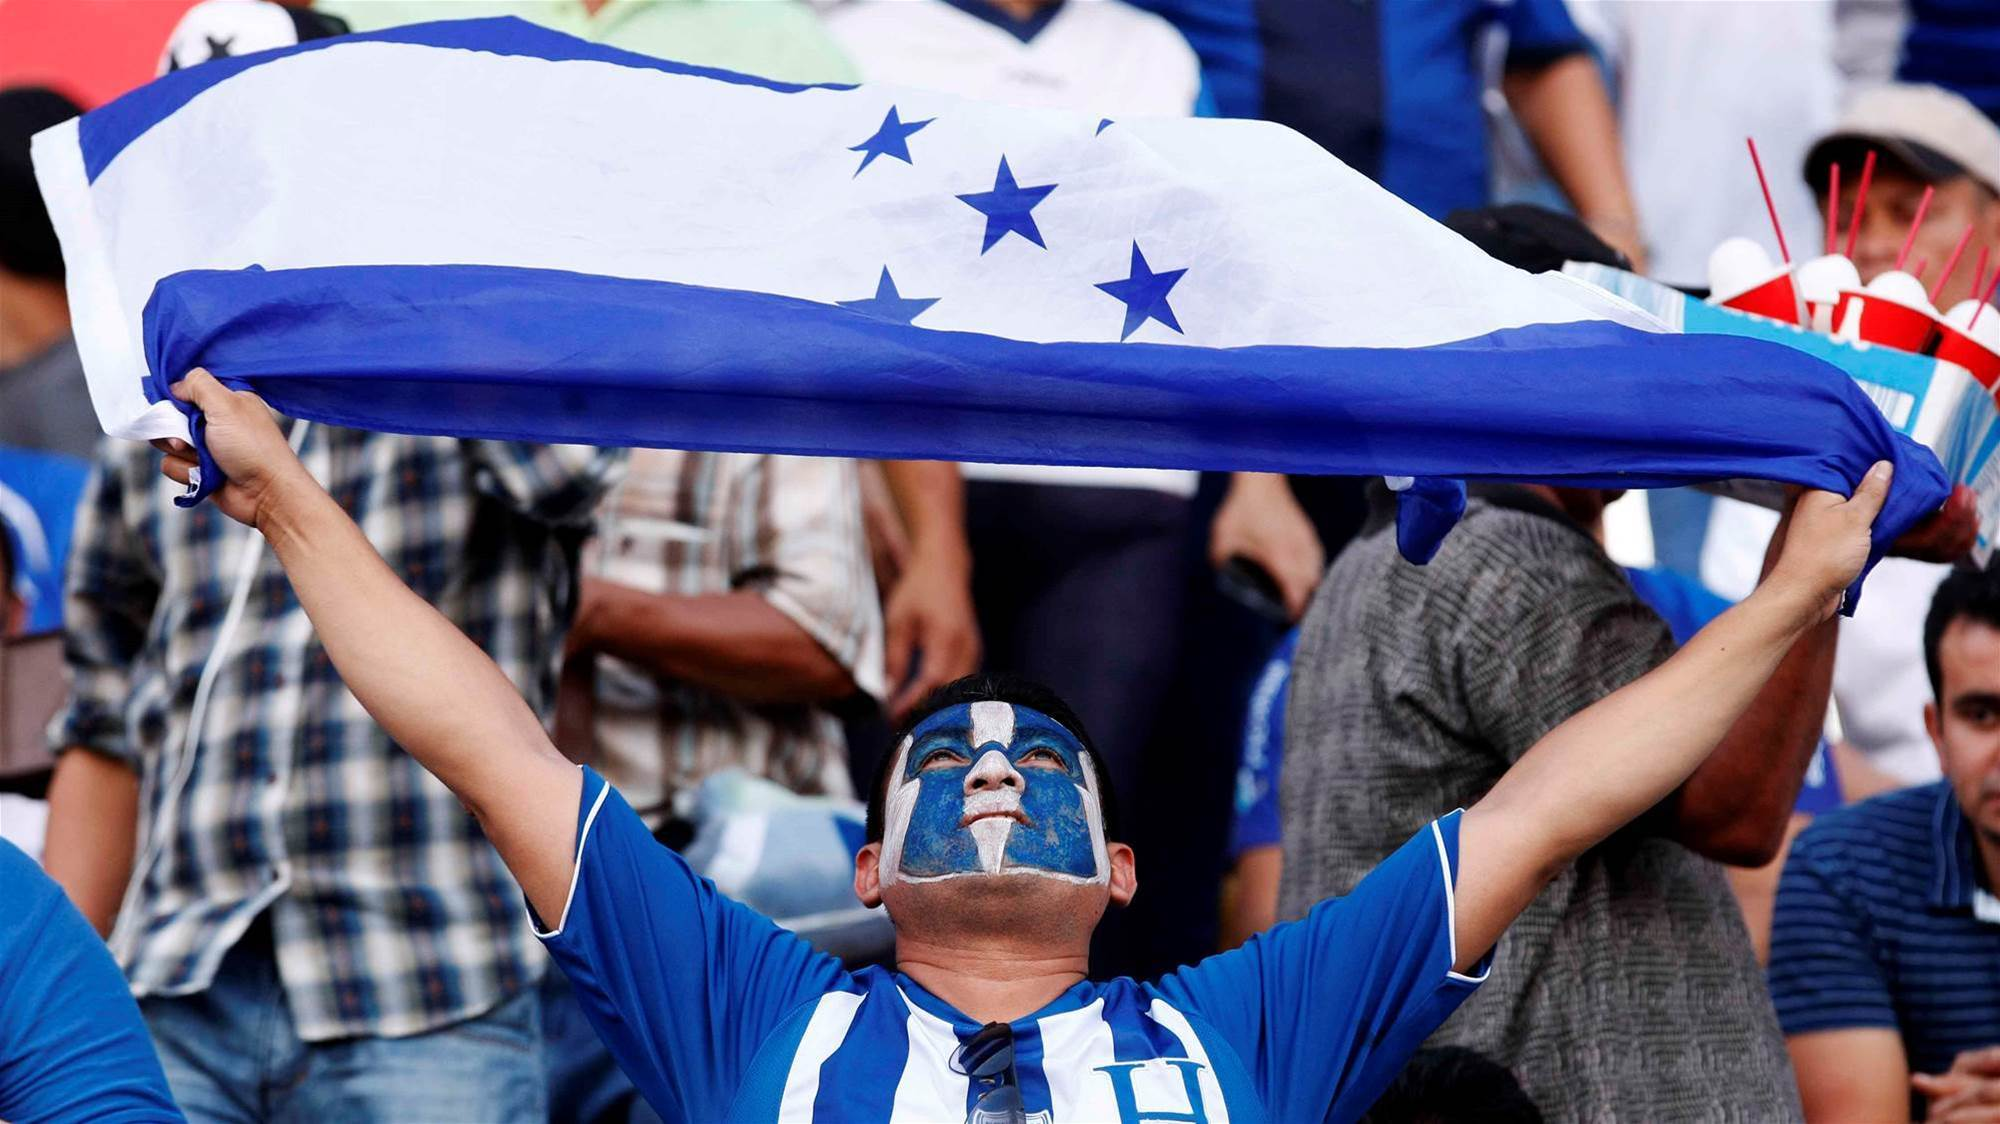 Honduras' Operation Kangaroo is go